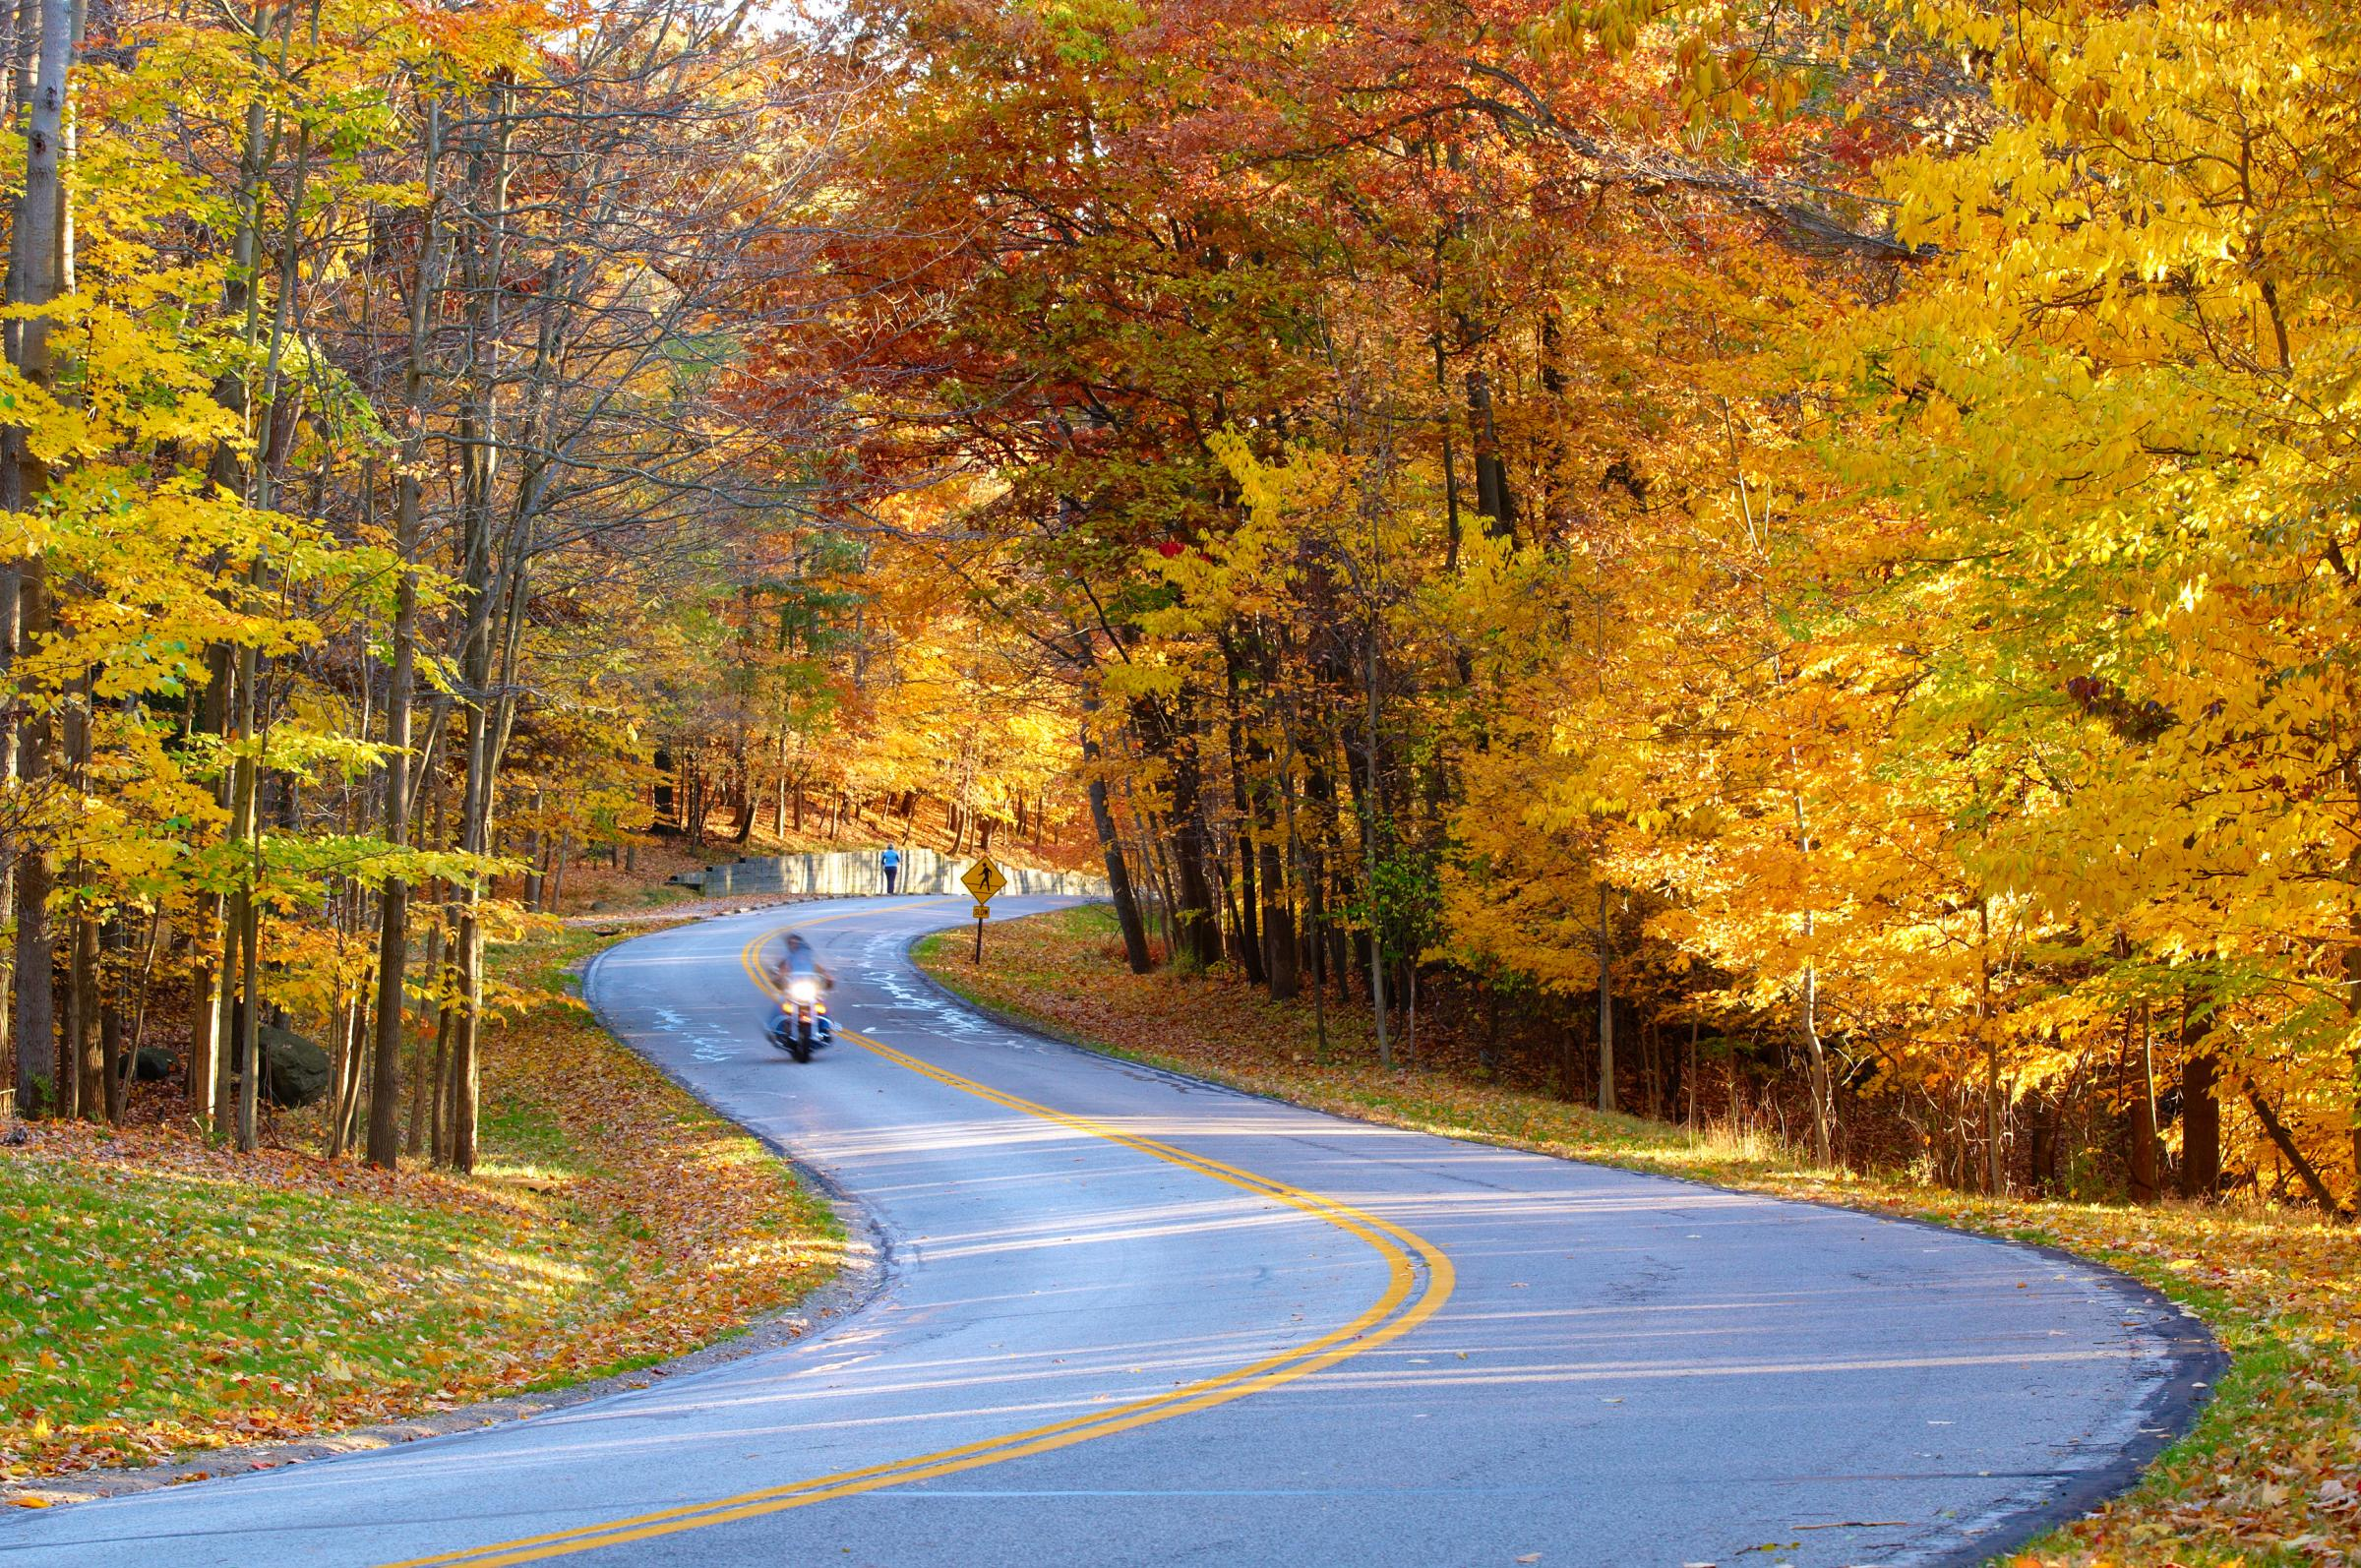 motorcycle ride in autumn